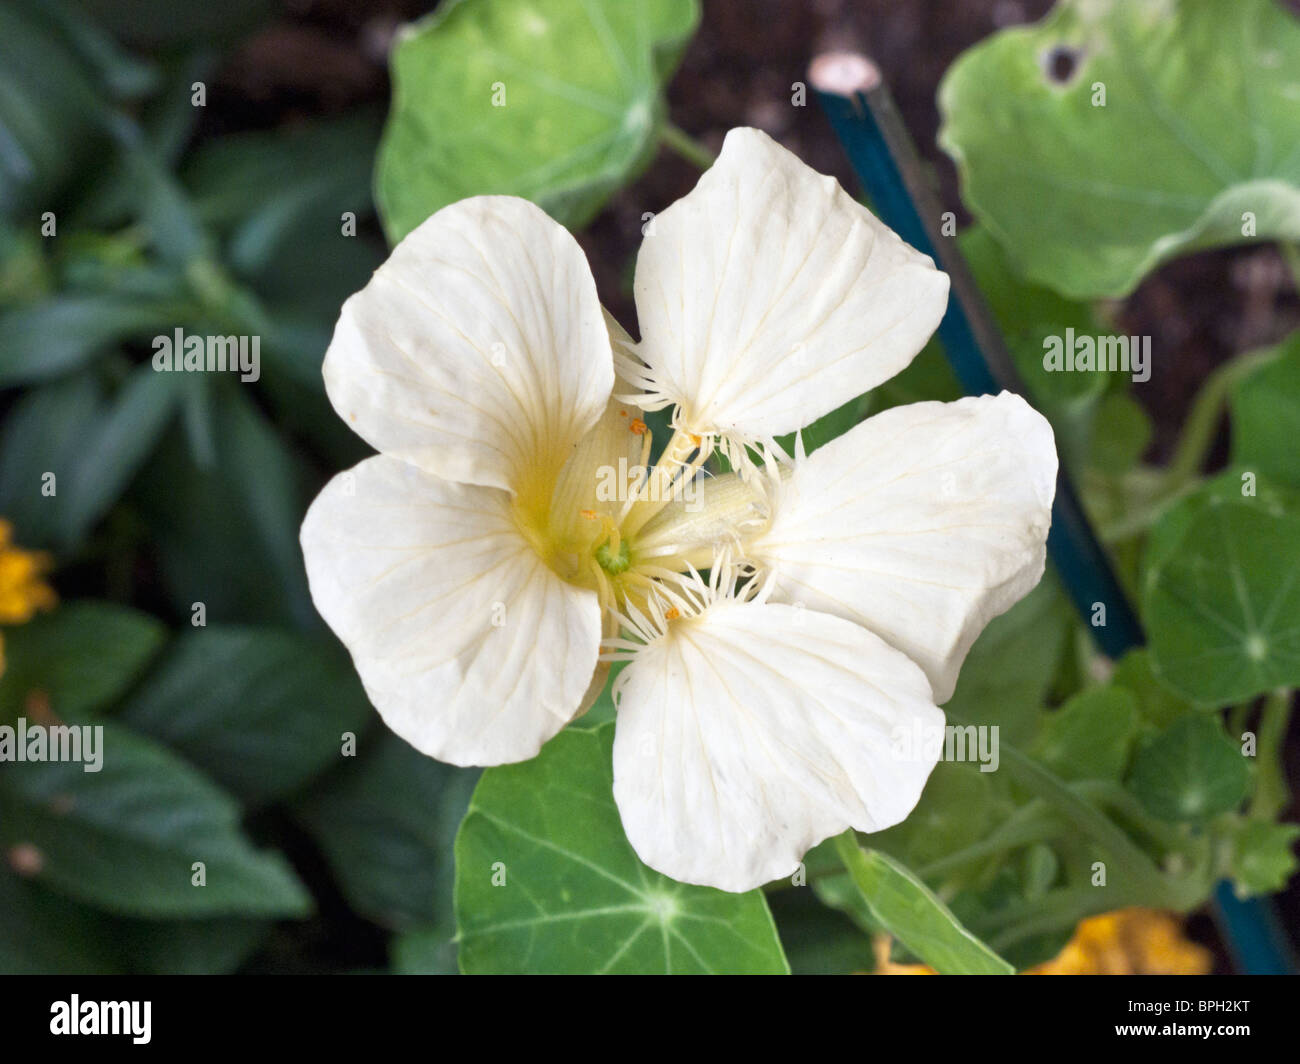 growing pale yellow nasturtium flower with leaves in a garden scene in Edmonds Washington Stock Photo